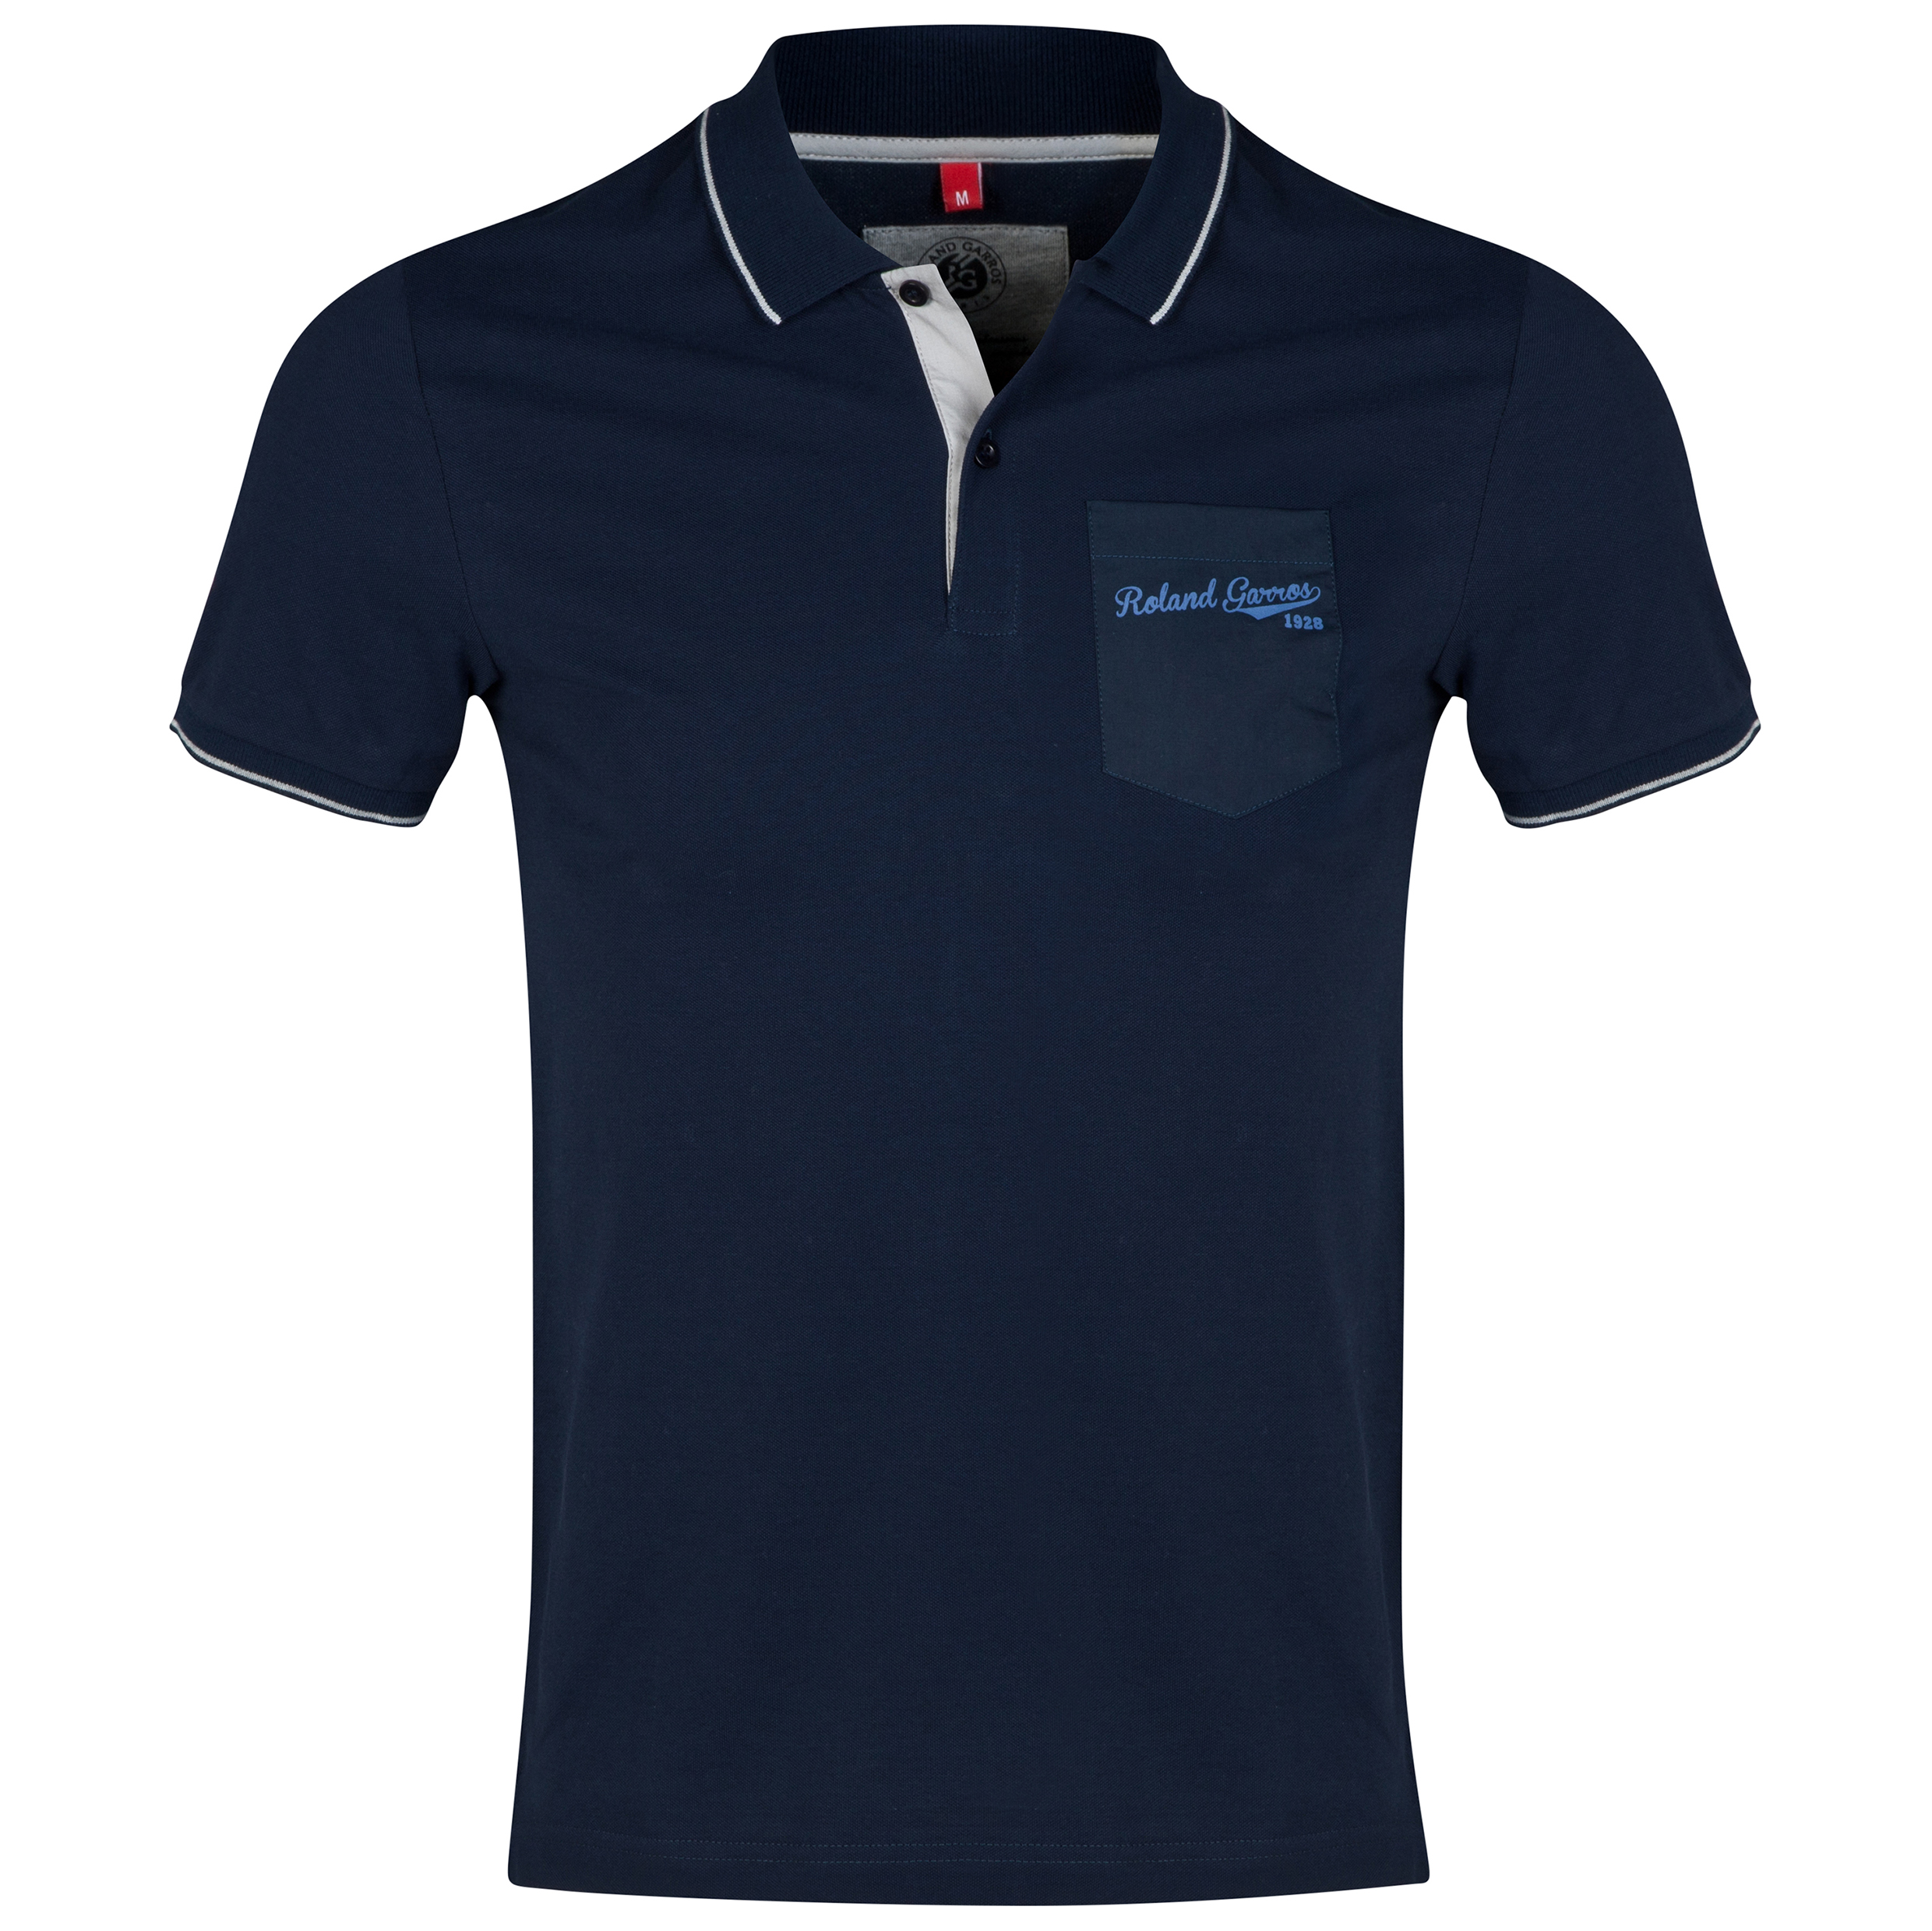 Roland-Garros Atibaia Polo with Pocket Navy